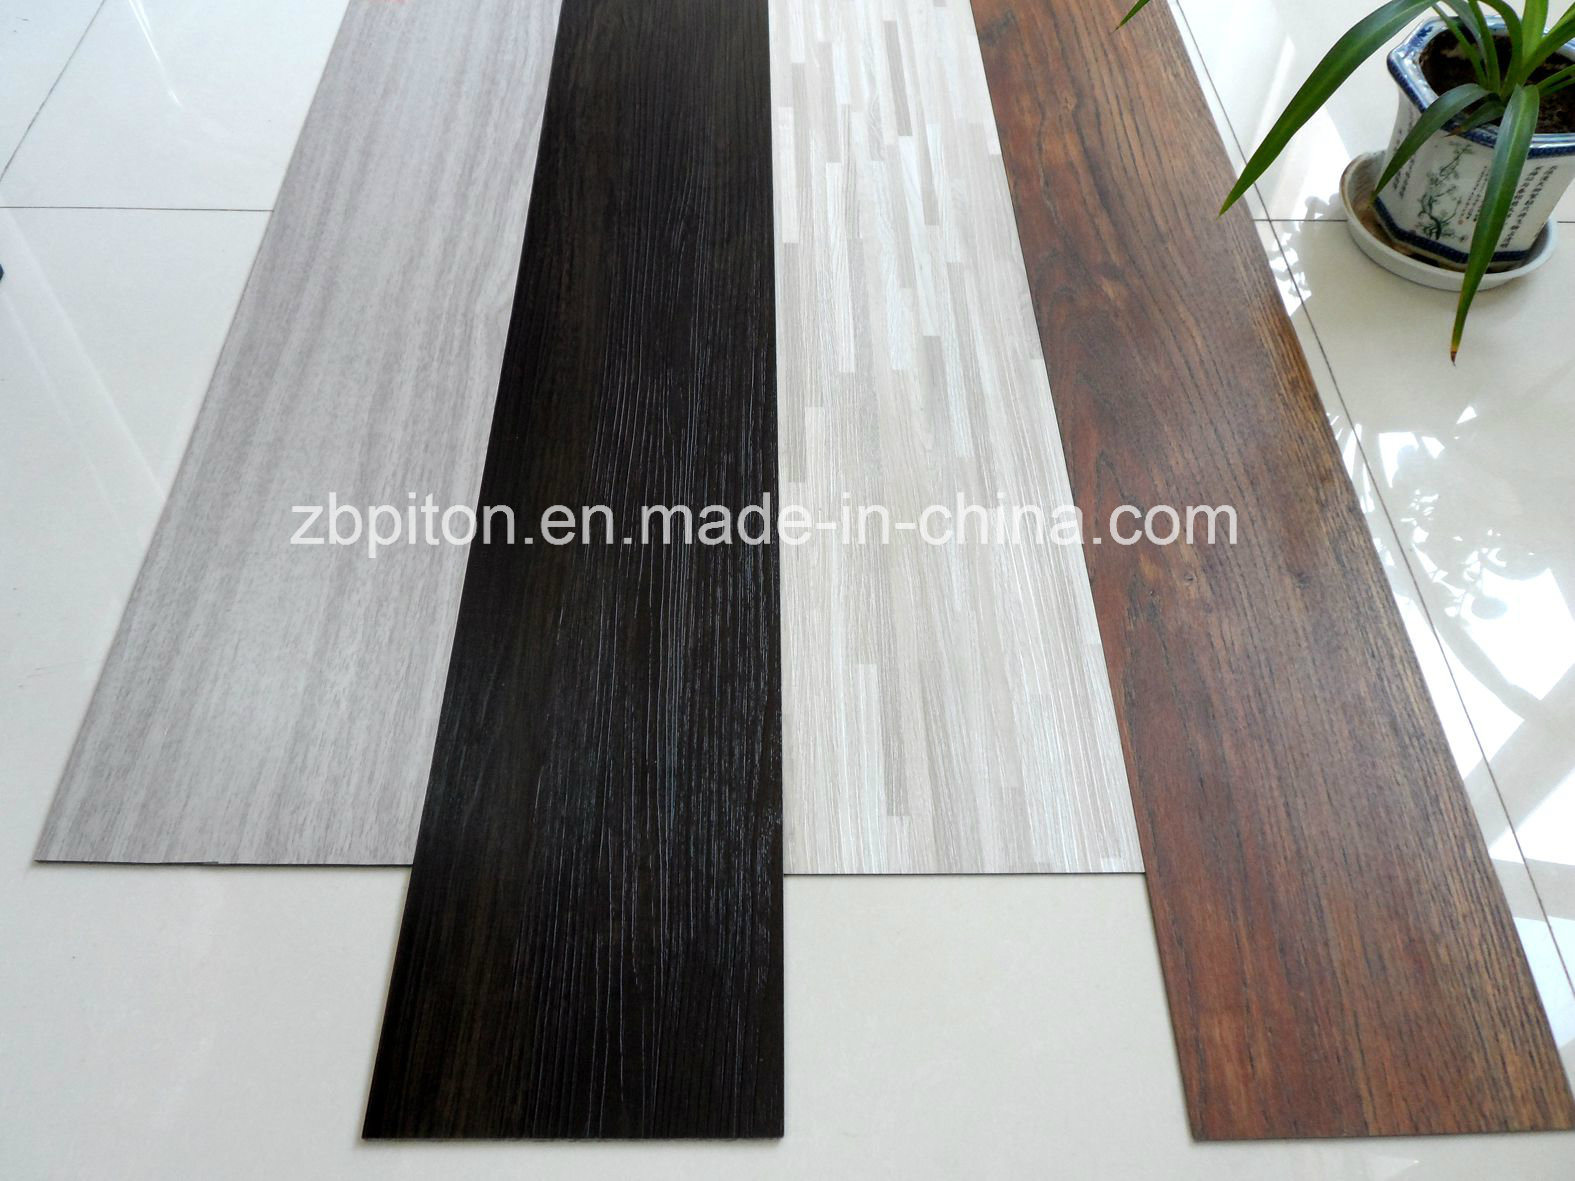 Vinyl Plank Flooring Eco Friendly